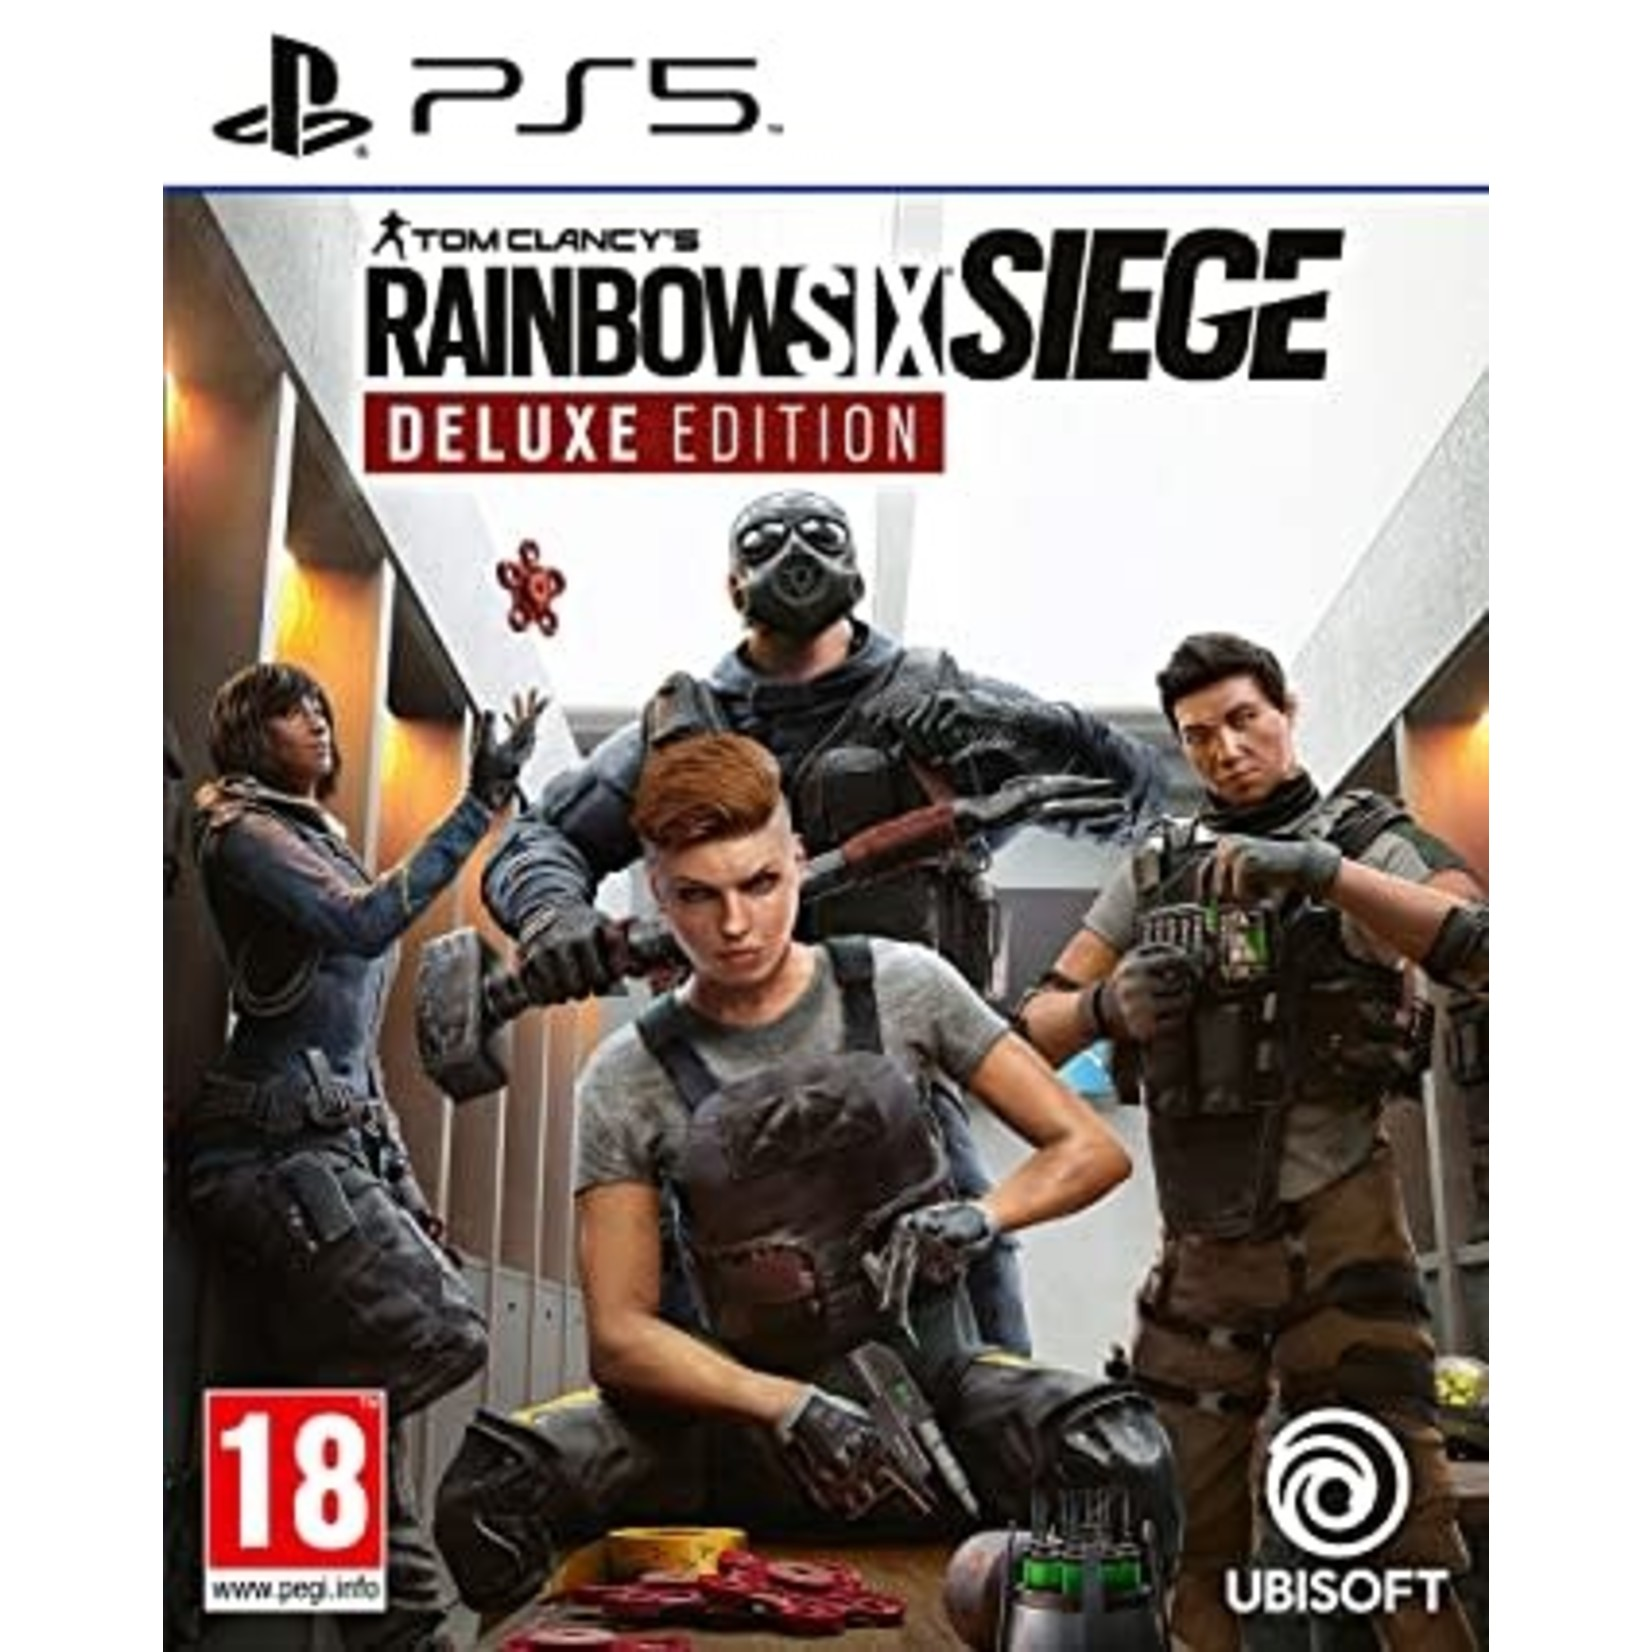 PS5-Tom Clancy's Rainbow Six Siege Deluxe Edition